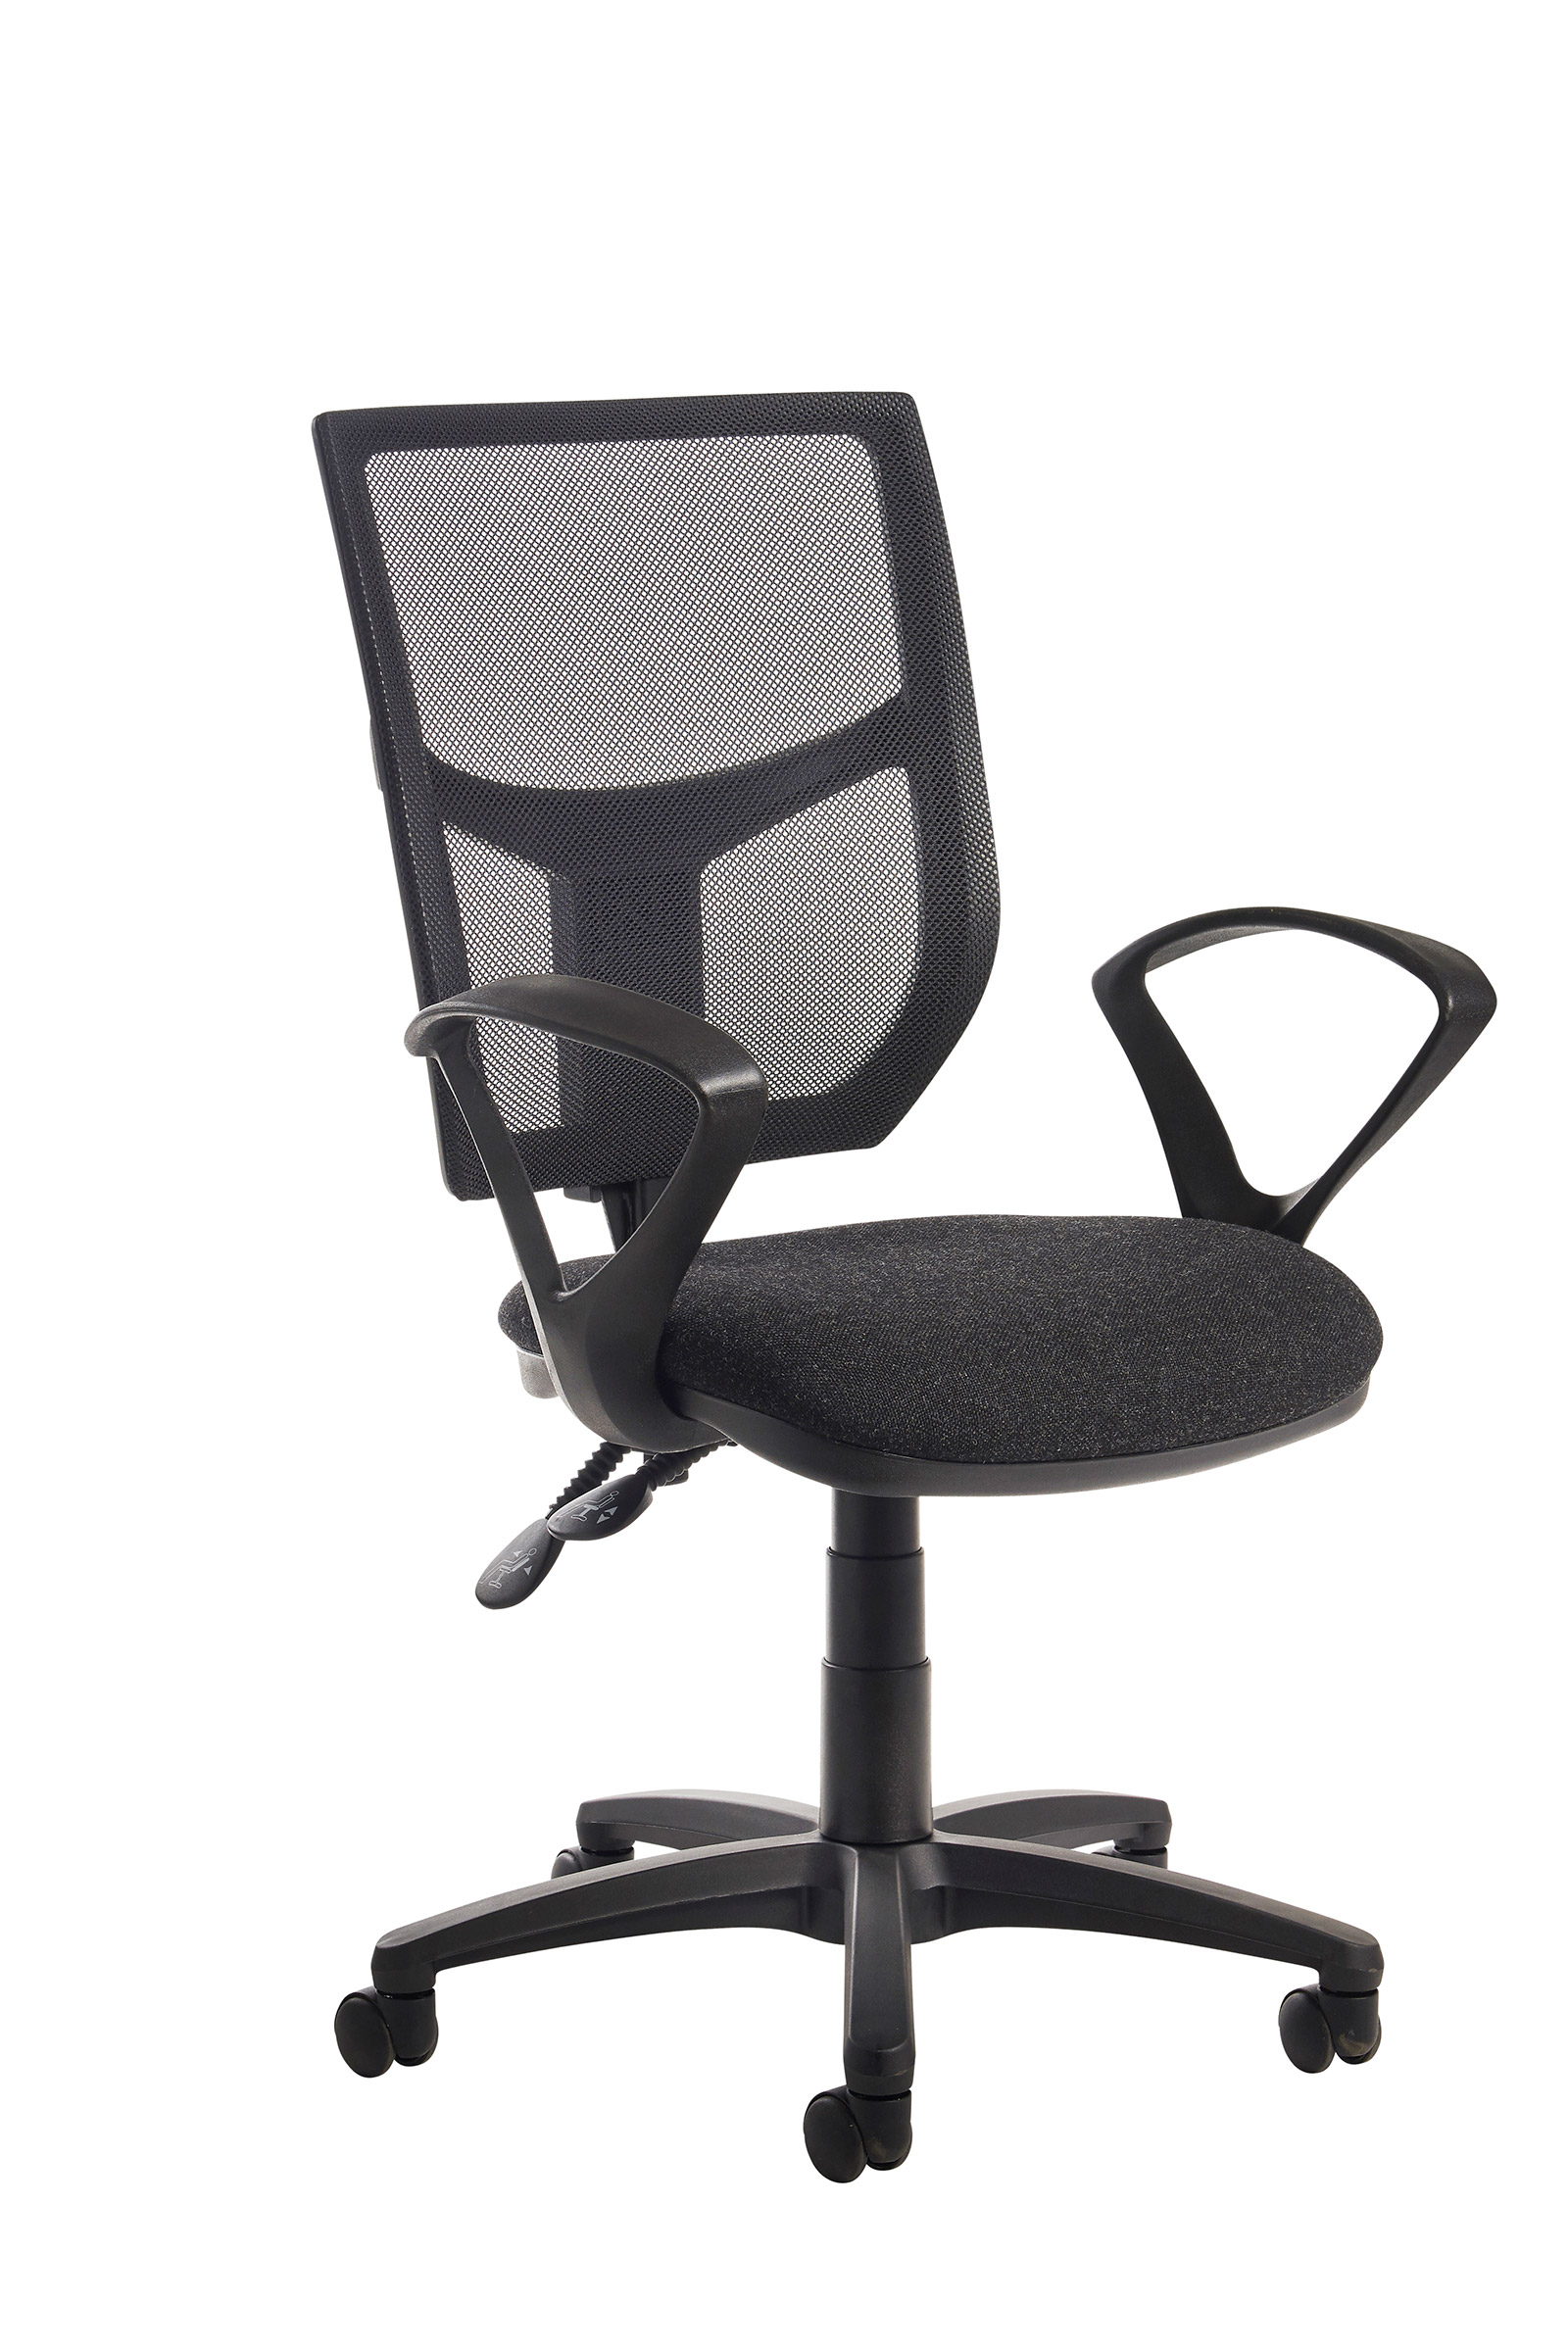 Altino high back operator chair  with fixed arms charcoal